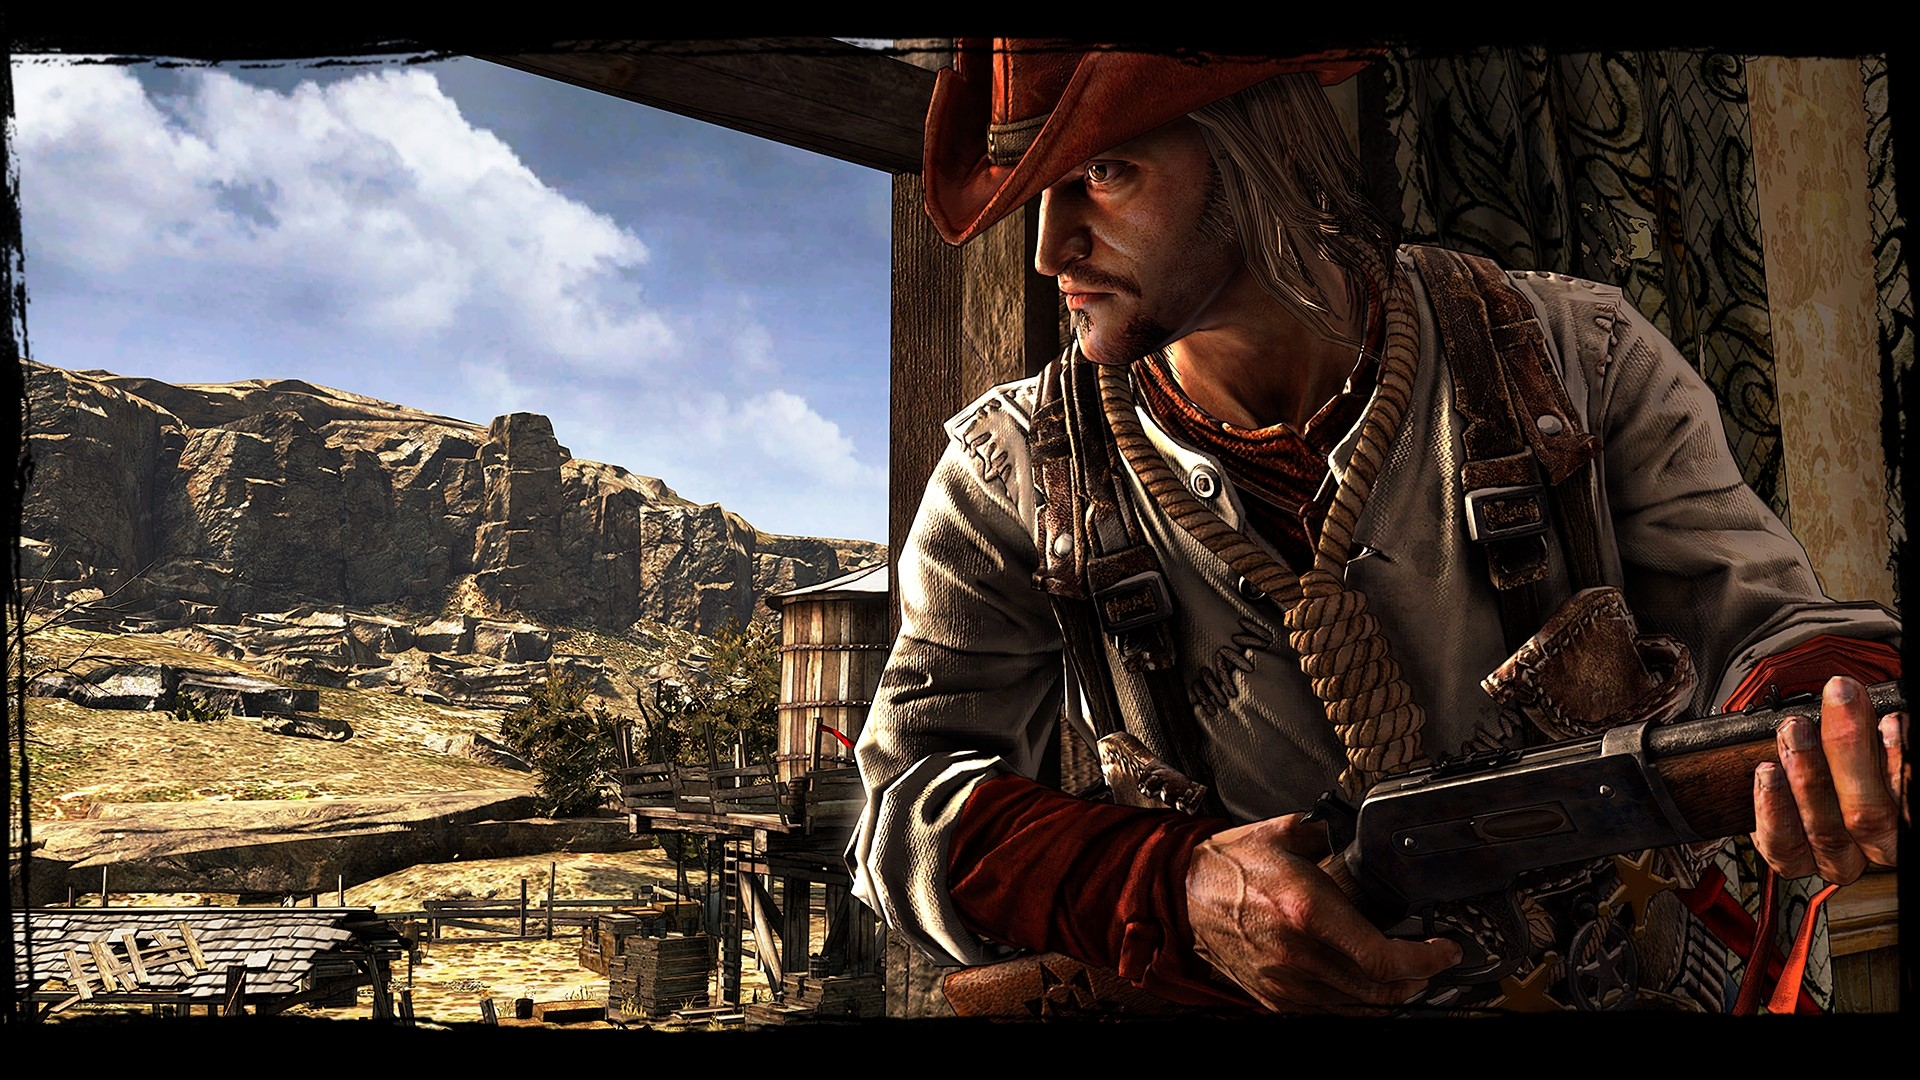 CALL OF JUAREZ: GUNSLINGER (STEAM KEY / REGION FREE)